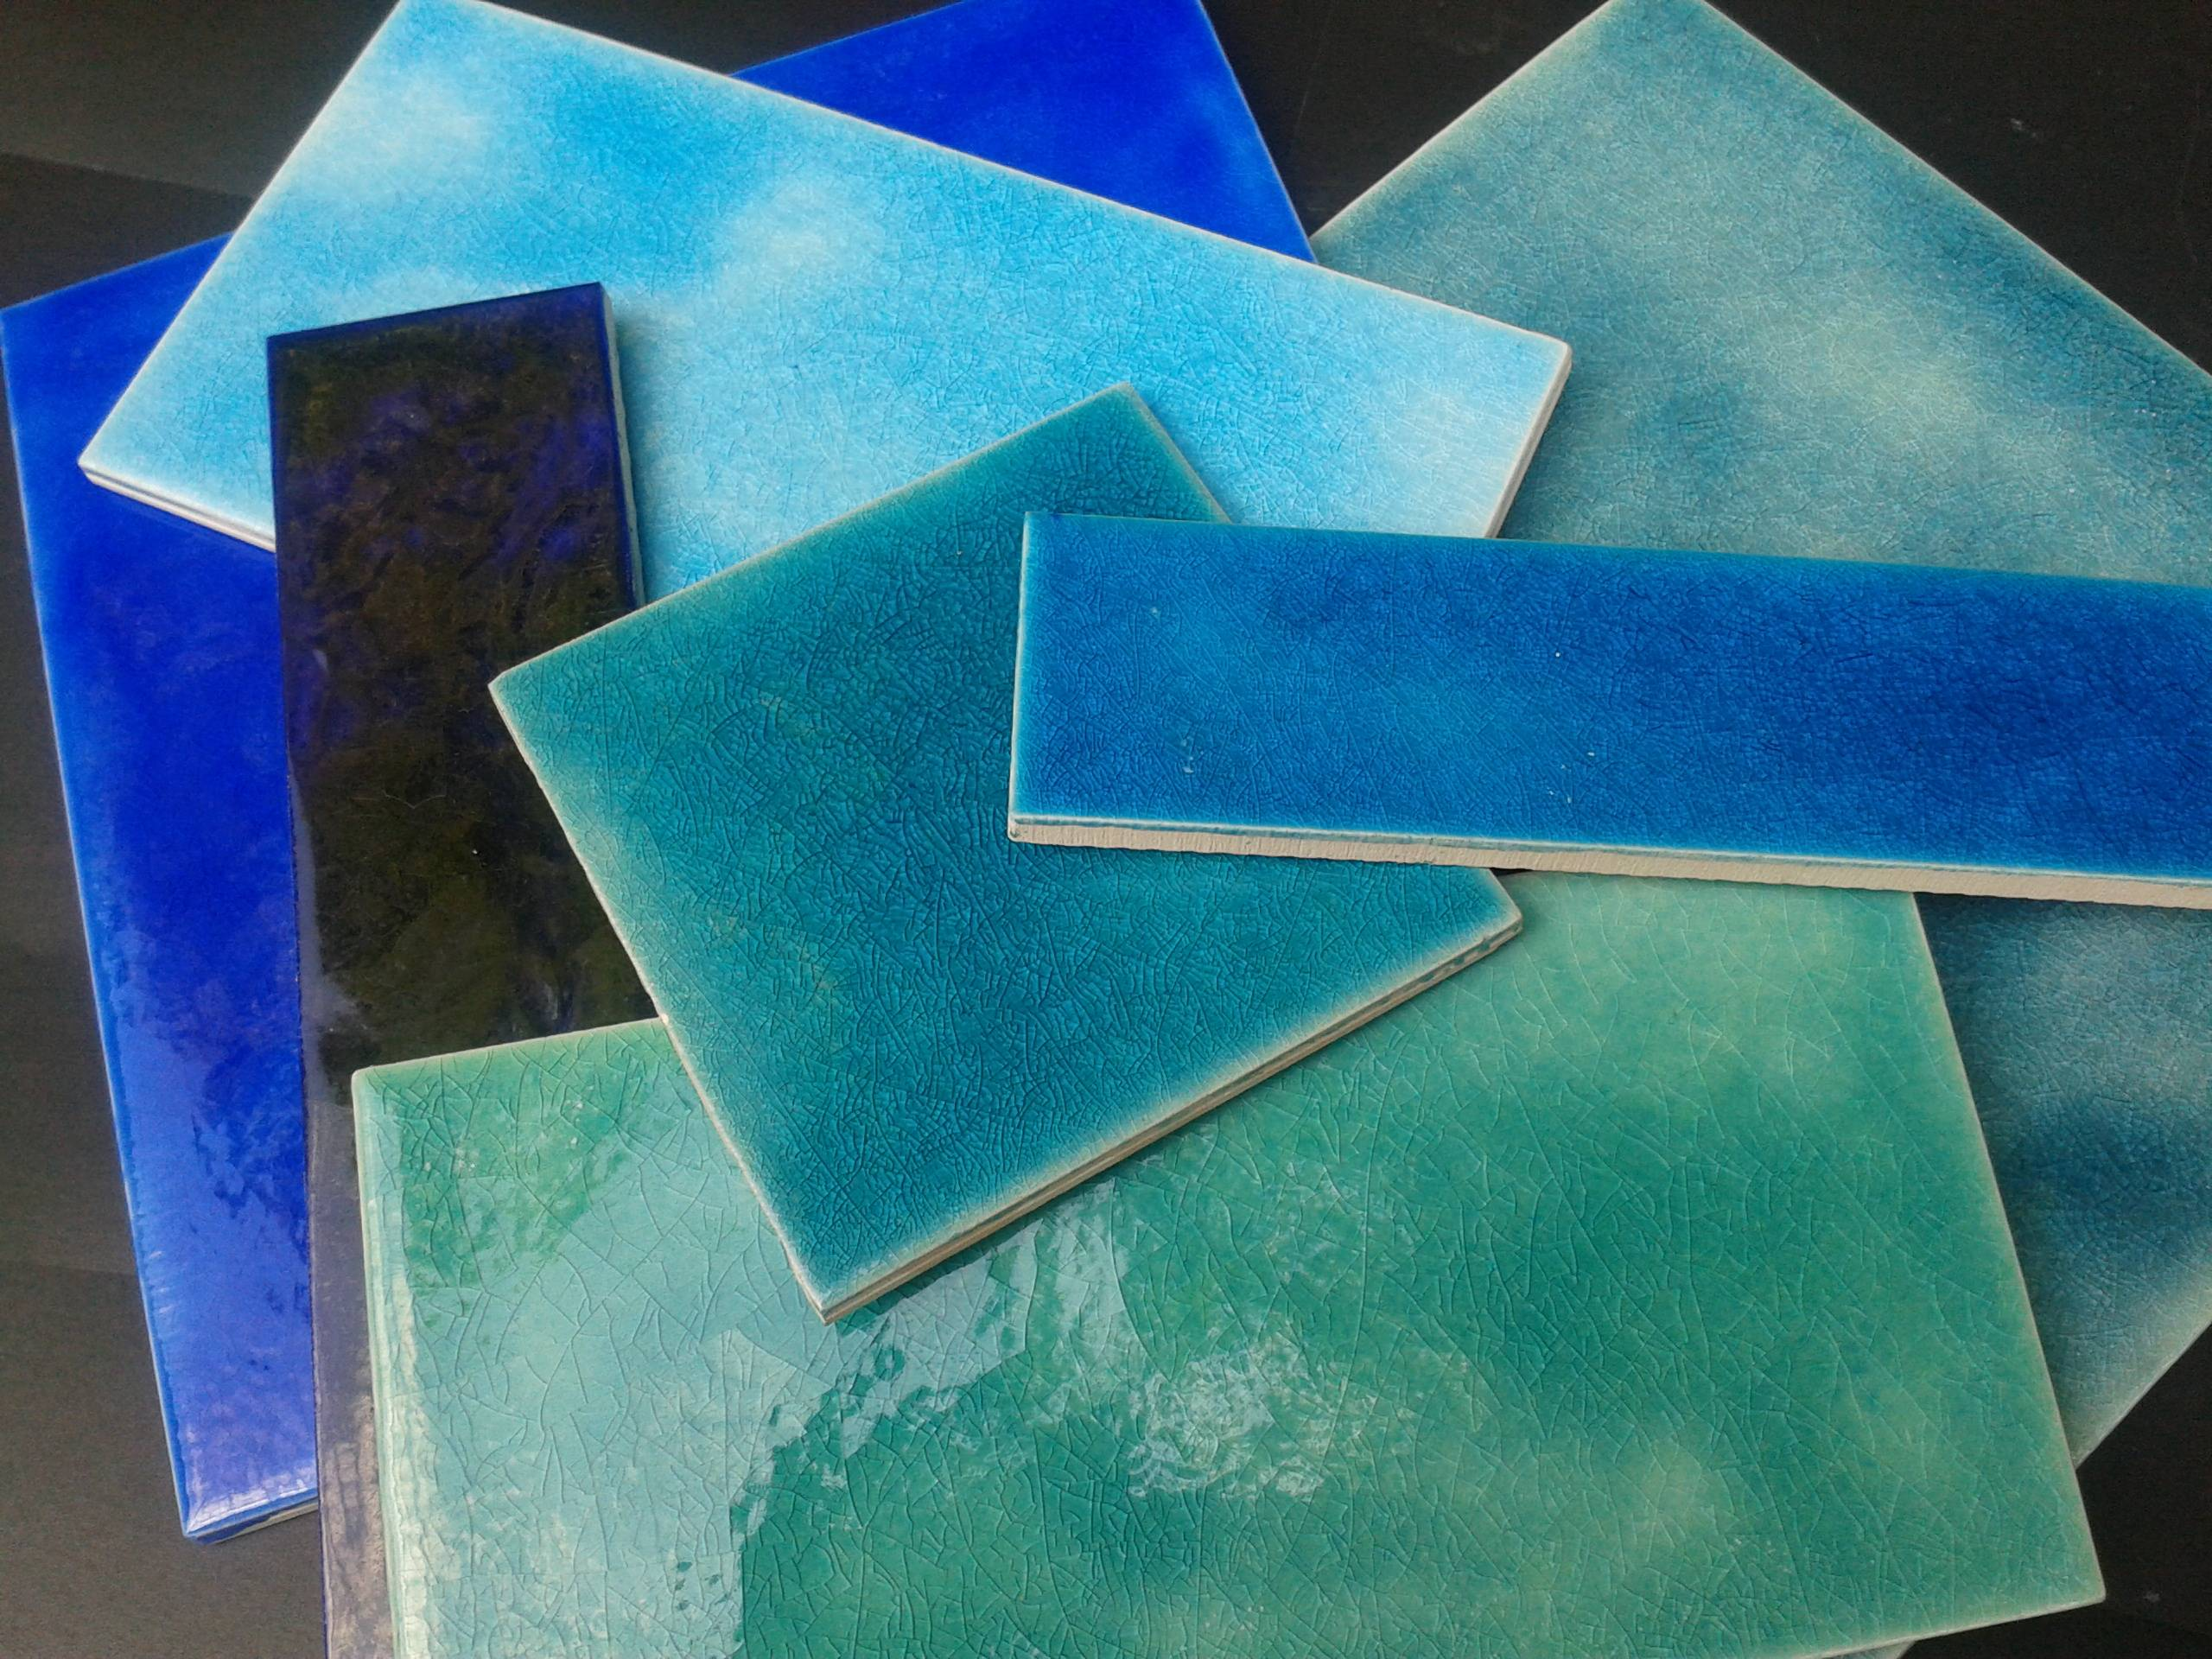 Persian glazed plain blues available in all sizes